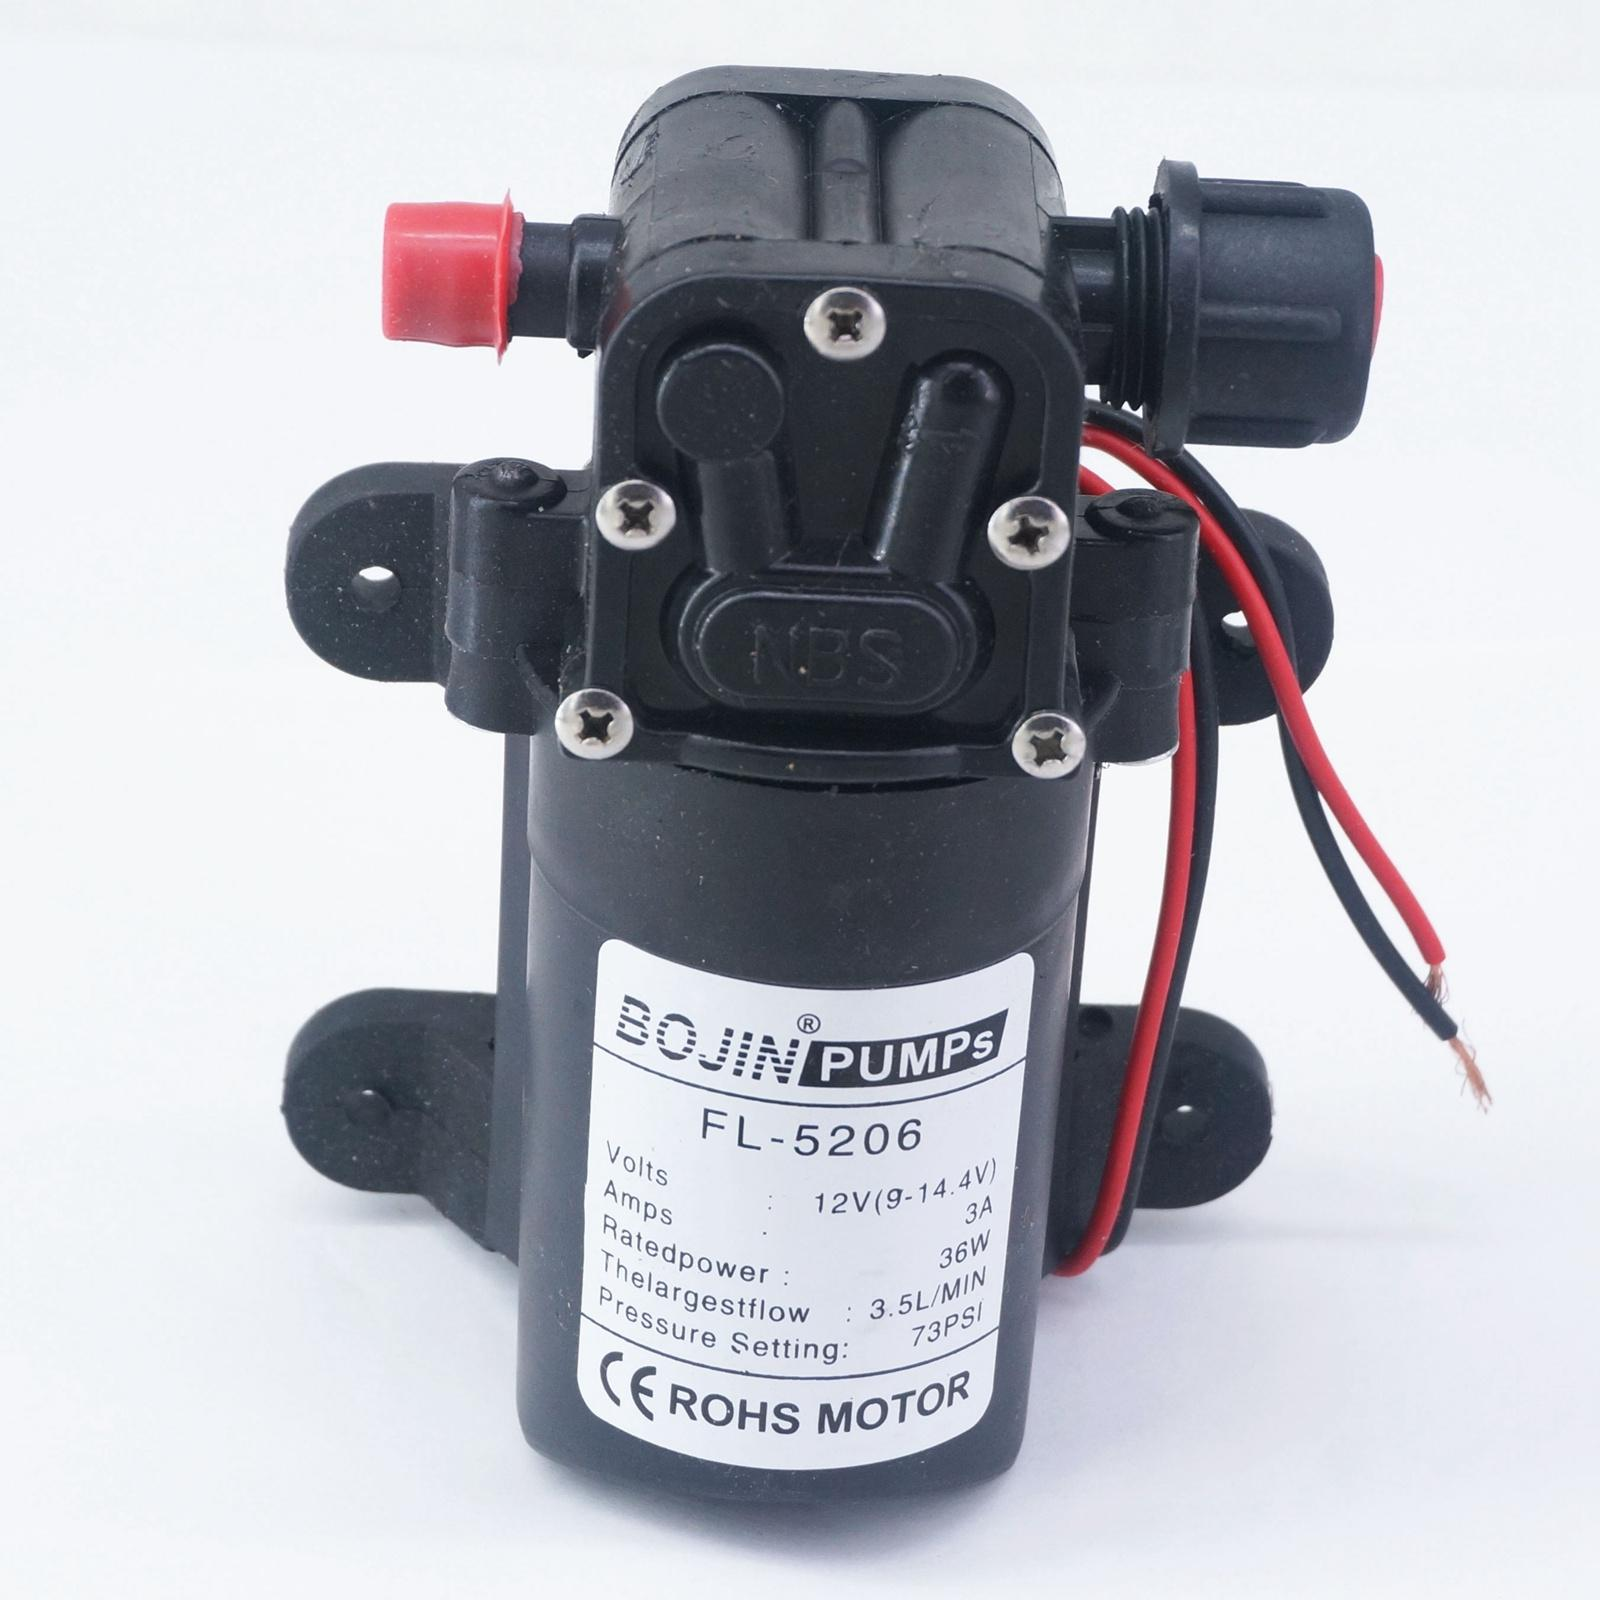 цена 12V DC Electric Mini Diaphragm pump self-priming booster pumnp for garden cooling car washer 3A 36W 210L/H T26